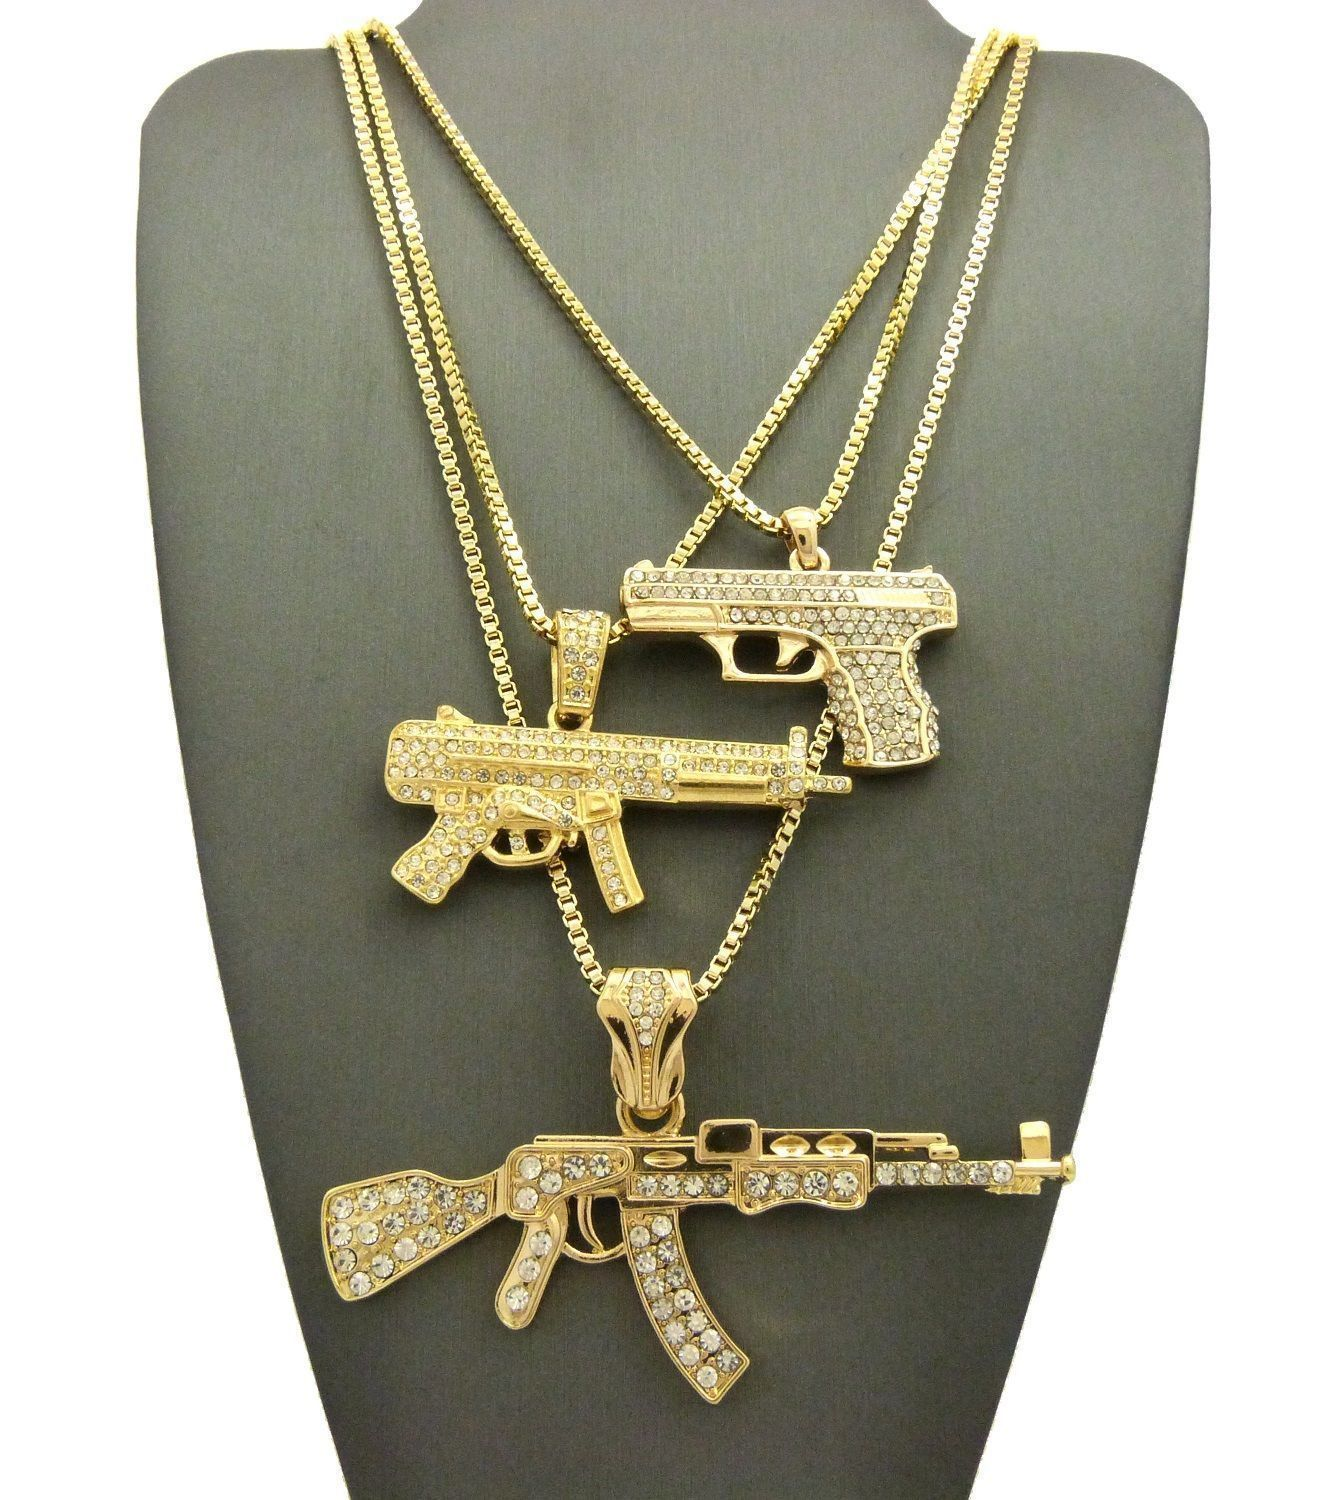 Chains necklaces and pendants 137839 mens machine gun ak47 chopper chains necklaces and pendants 137839 mens machine gun ak47 chopper uzi weapon gunpendant box chain 3 necklace set buy it now only 3499 on ebay mozeypictures Choice Image